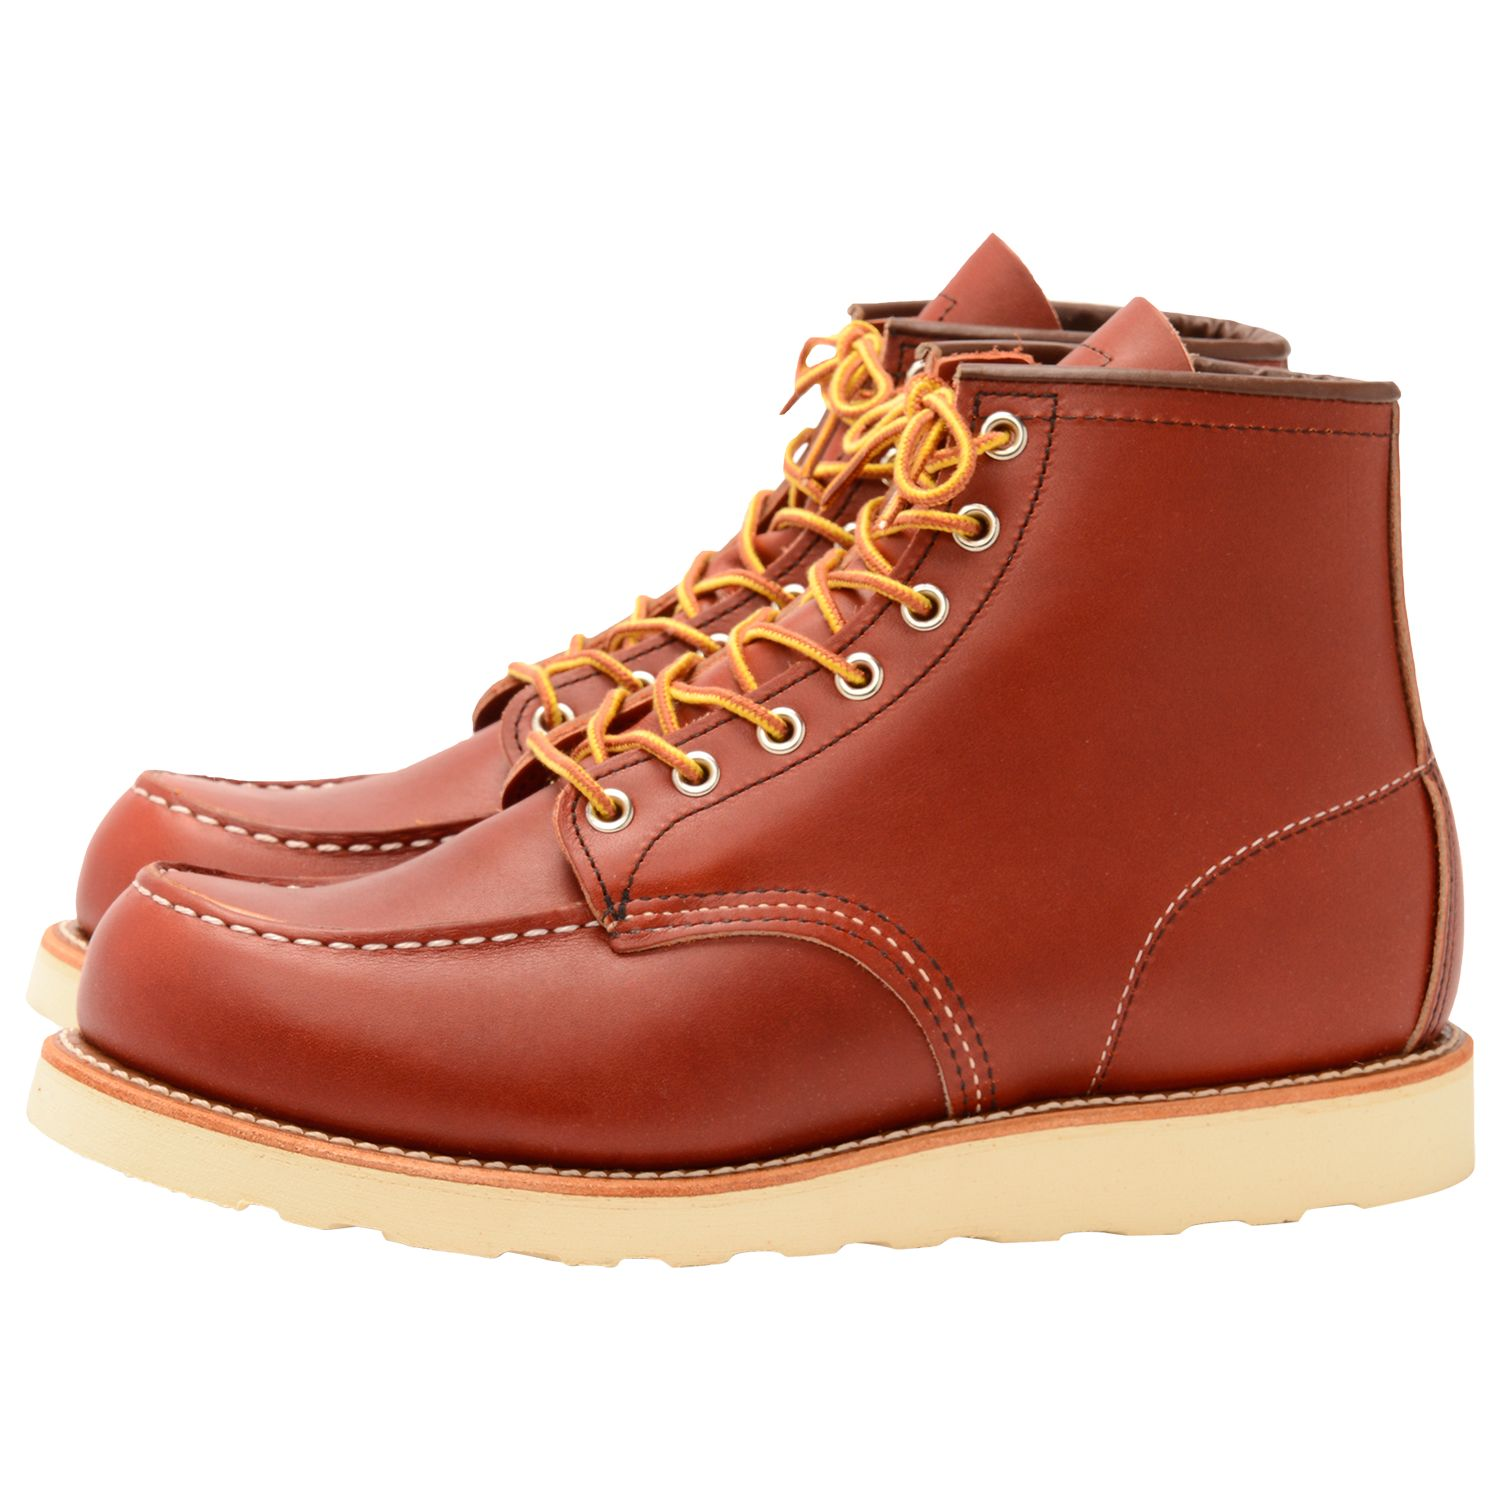 Red Wing Red Wing 8131 Moc Oro-russet Portage Toe Boot, Red